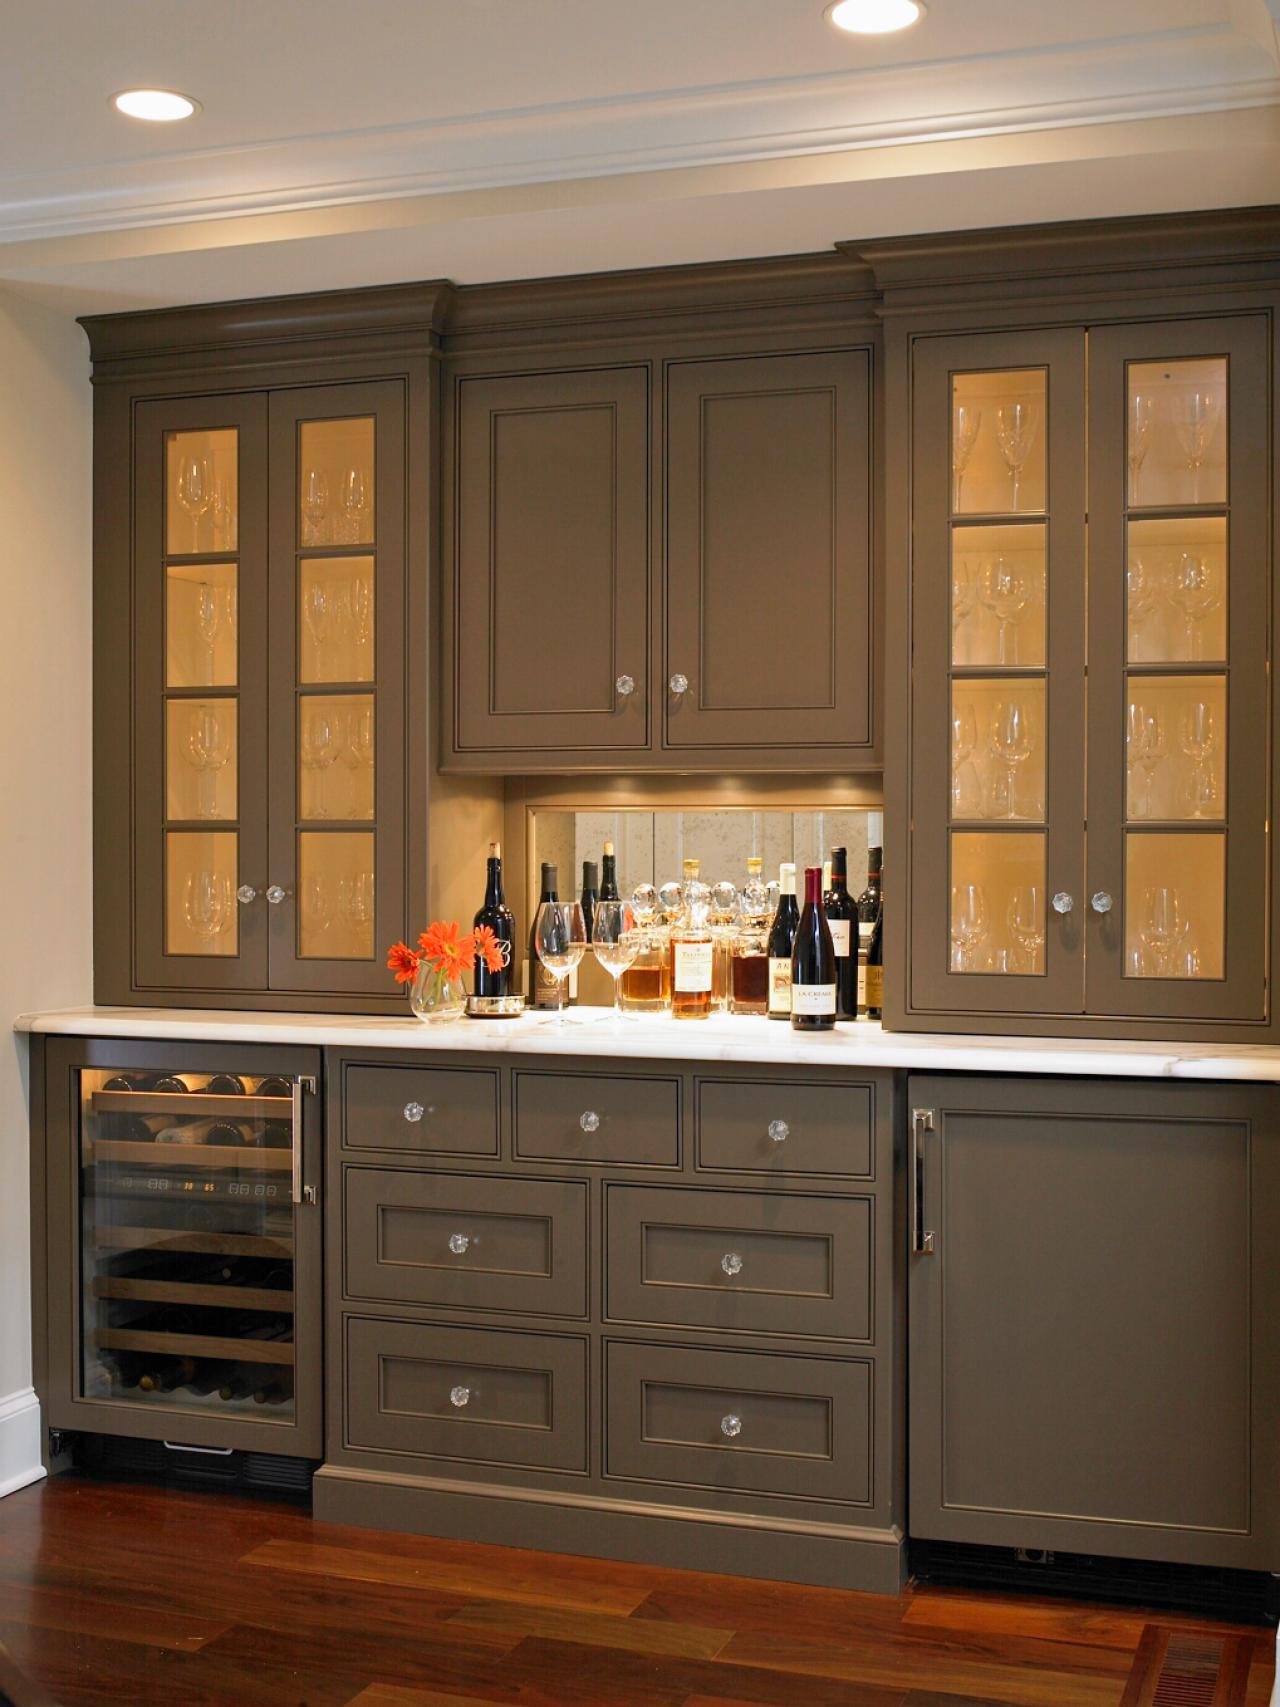 Thomasville Cabinets | Medallion Silverline Cabinets Reviews | Thomasville Vanity